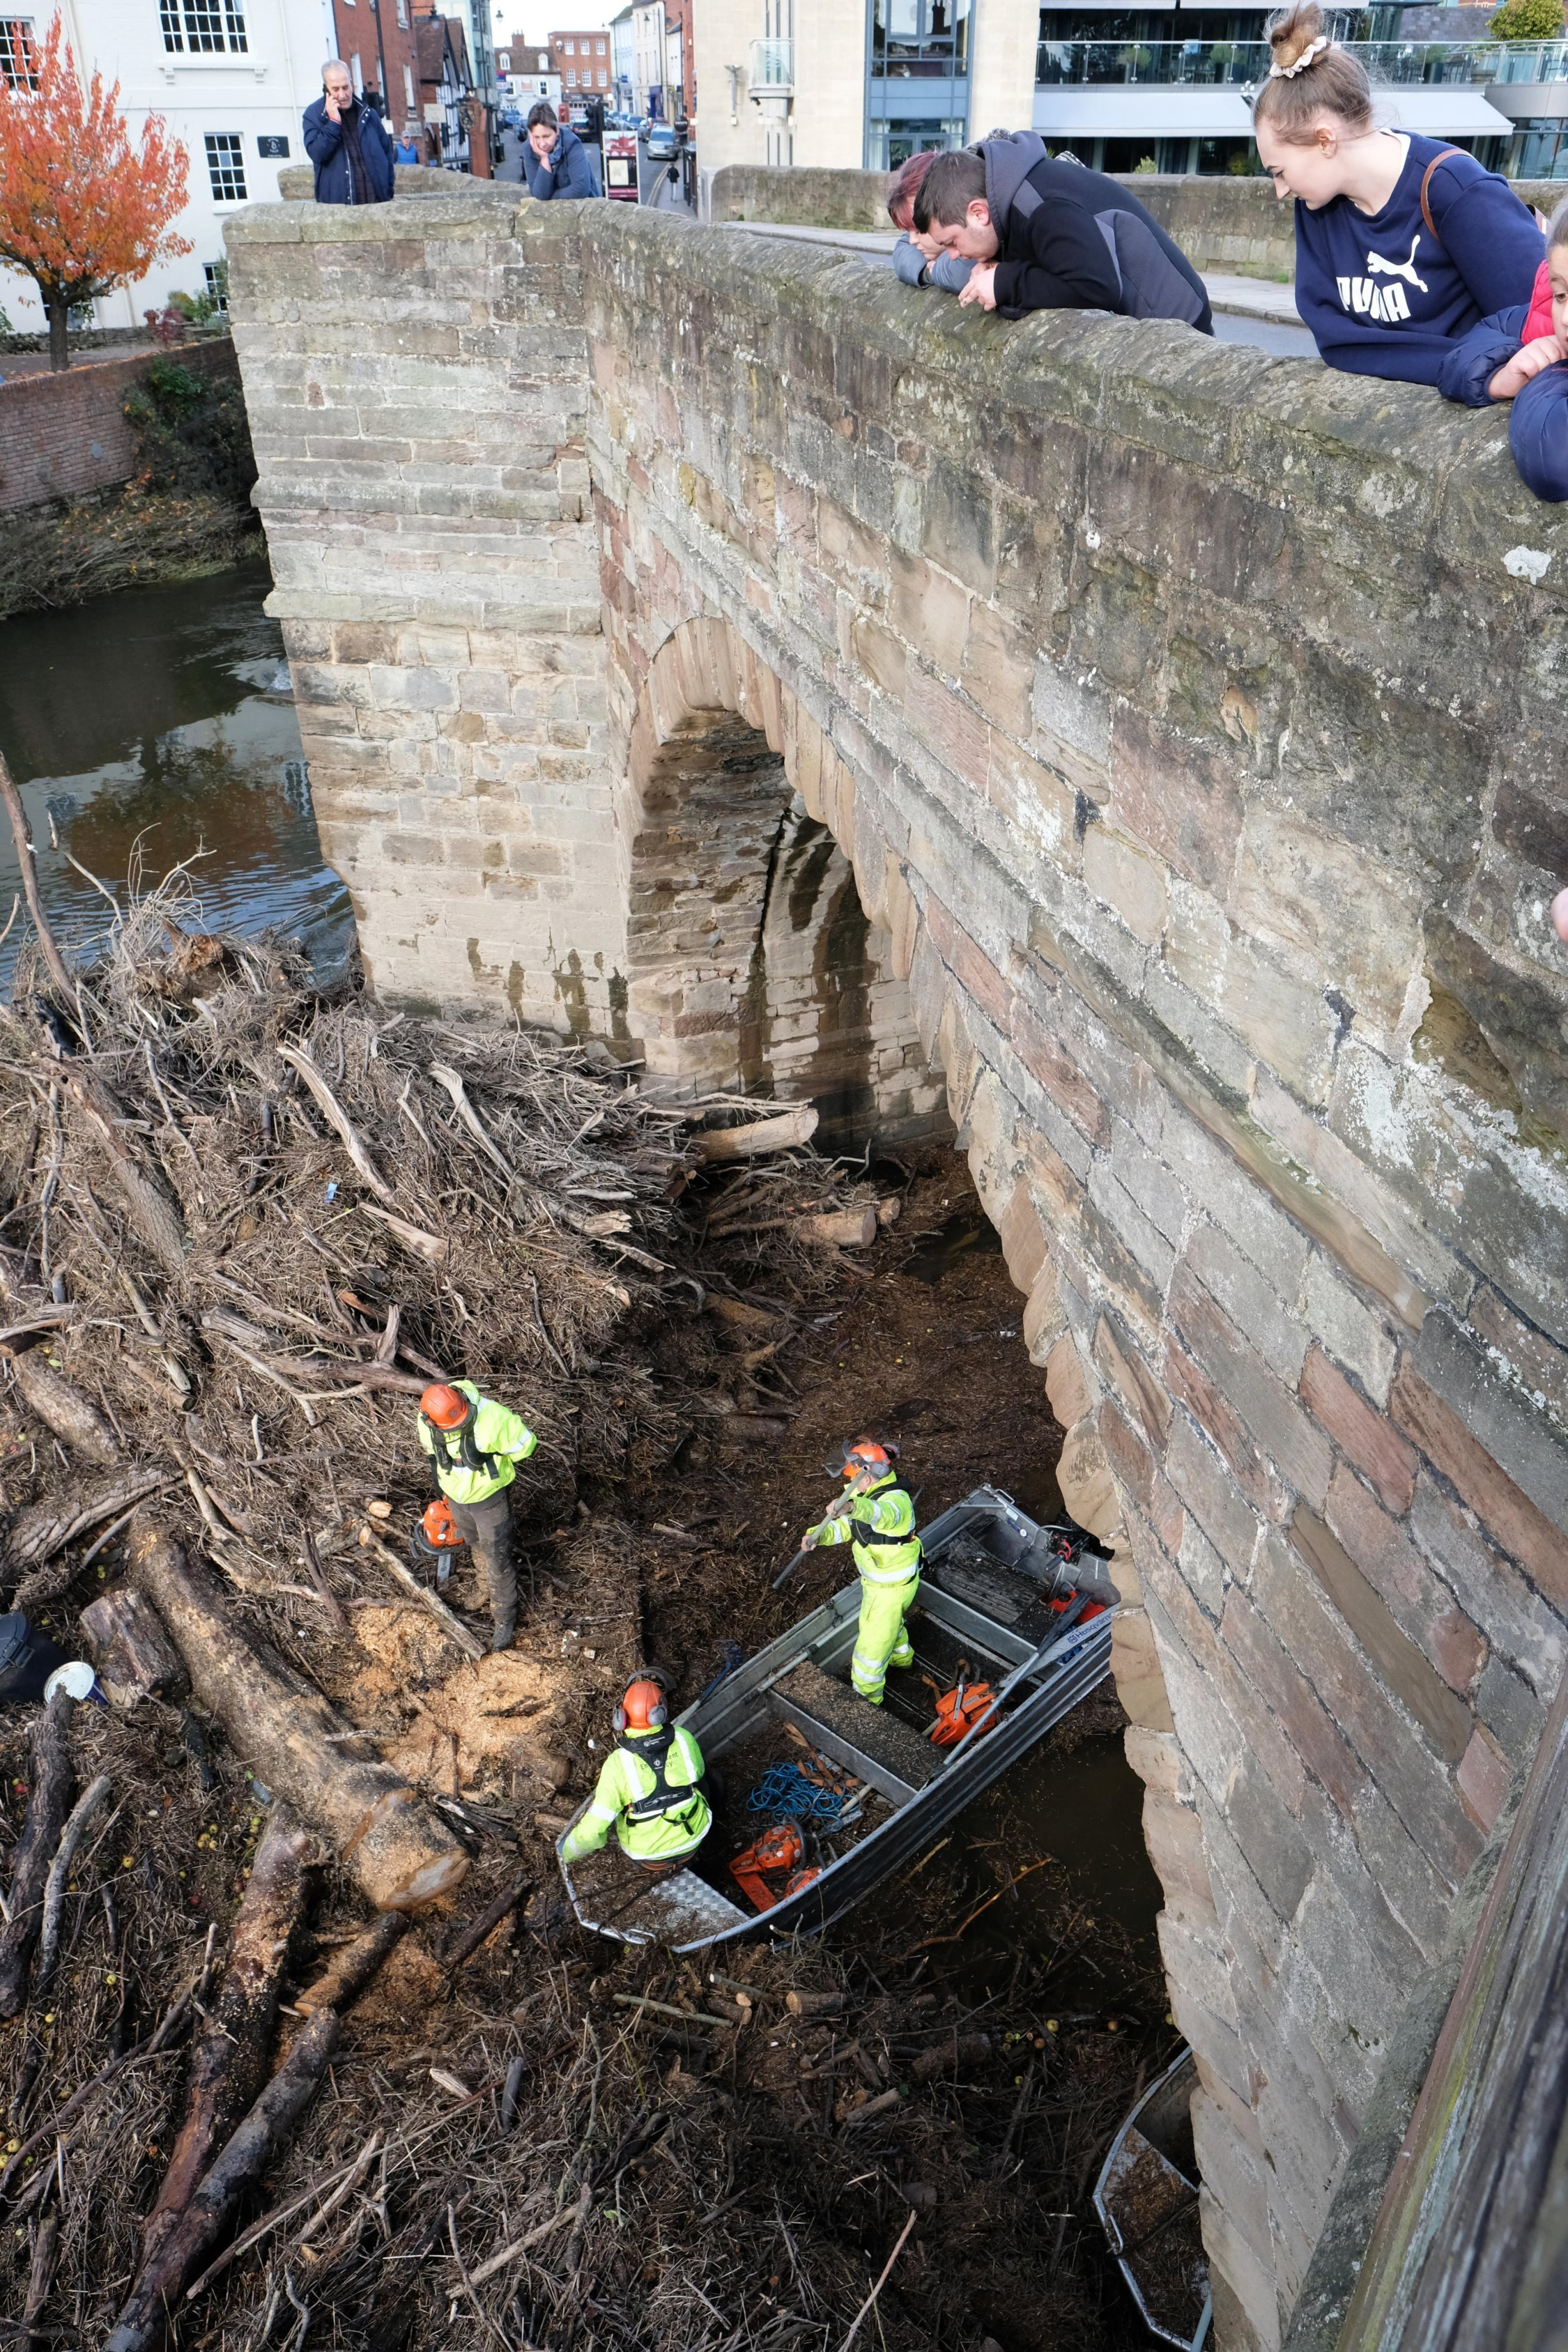 Environment Agency staff work to clear the debris blocking the central arches on the Wye Bridge in Hereford